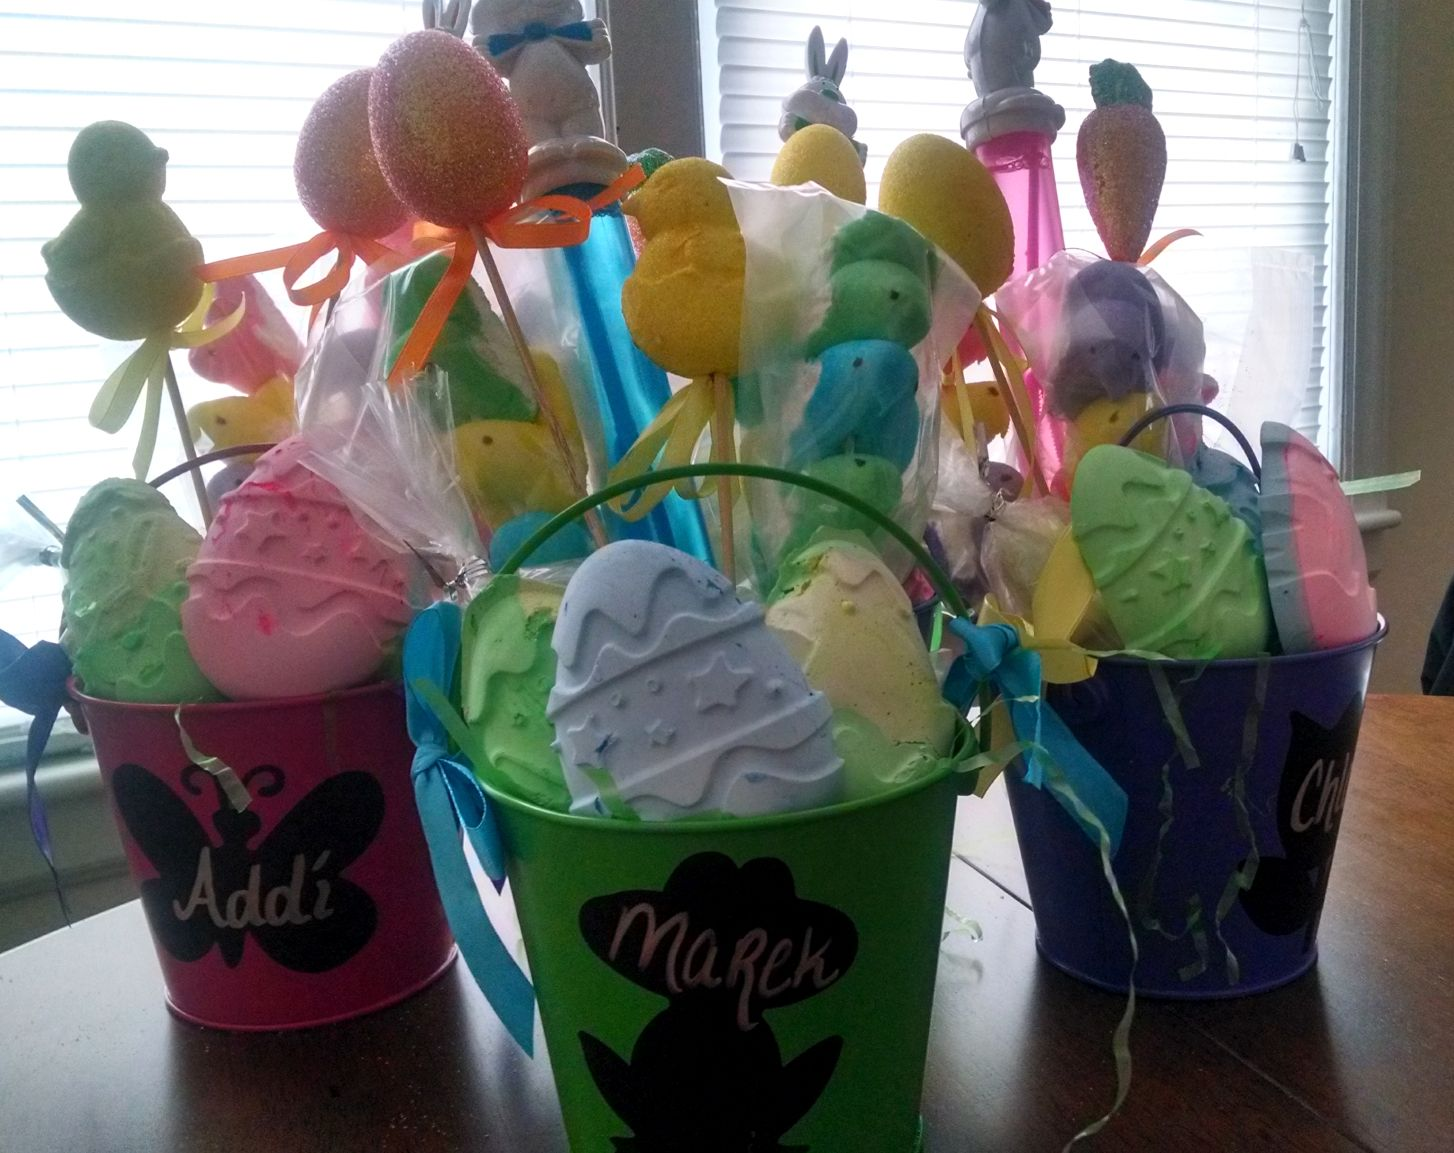 Need some things to throw together for a nice little basket for the kids this Easter? Add a little personal touch to the baskets this year with extremely easy DIY items.